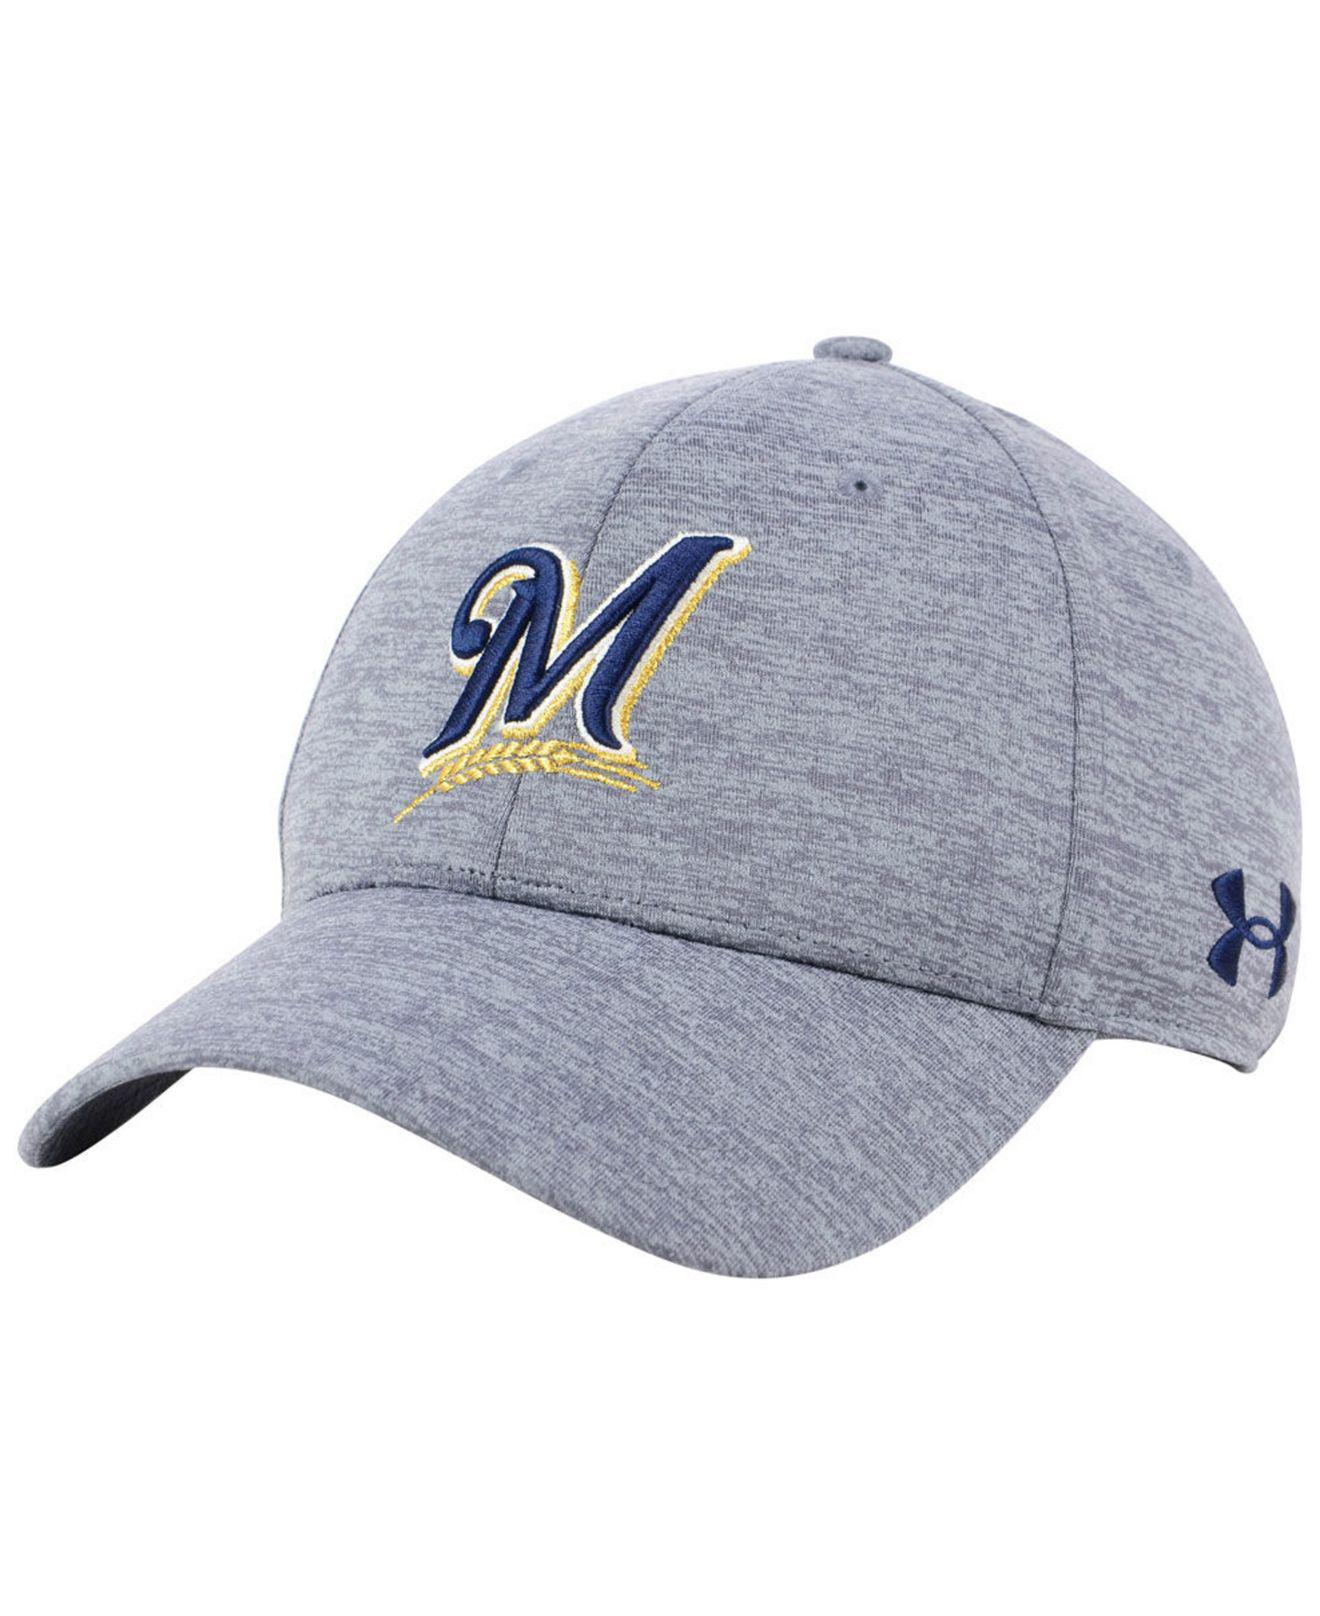 9cd32a292e1 Lyst - Under Armour Milwaukee Brewers Twist Closer Cap in Gray for Men